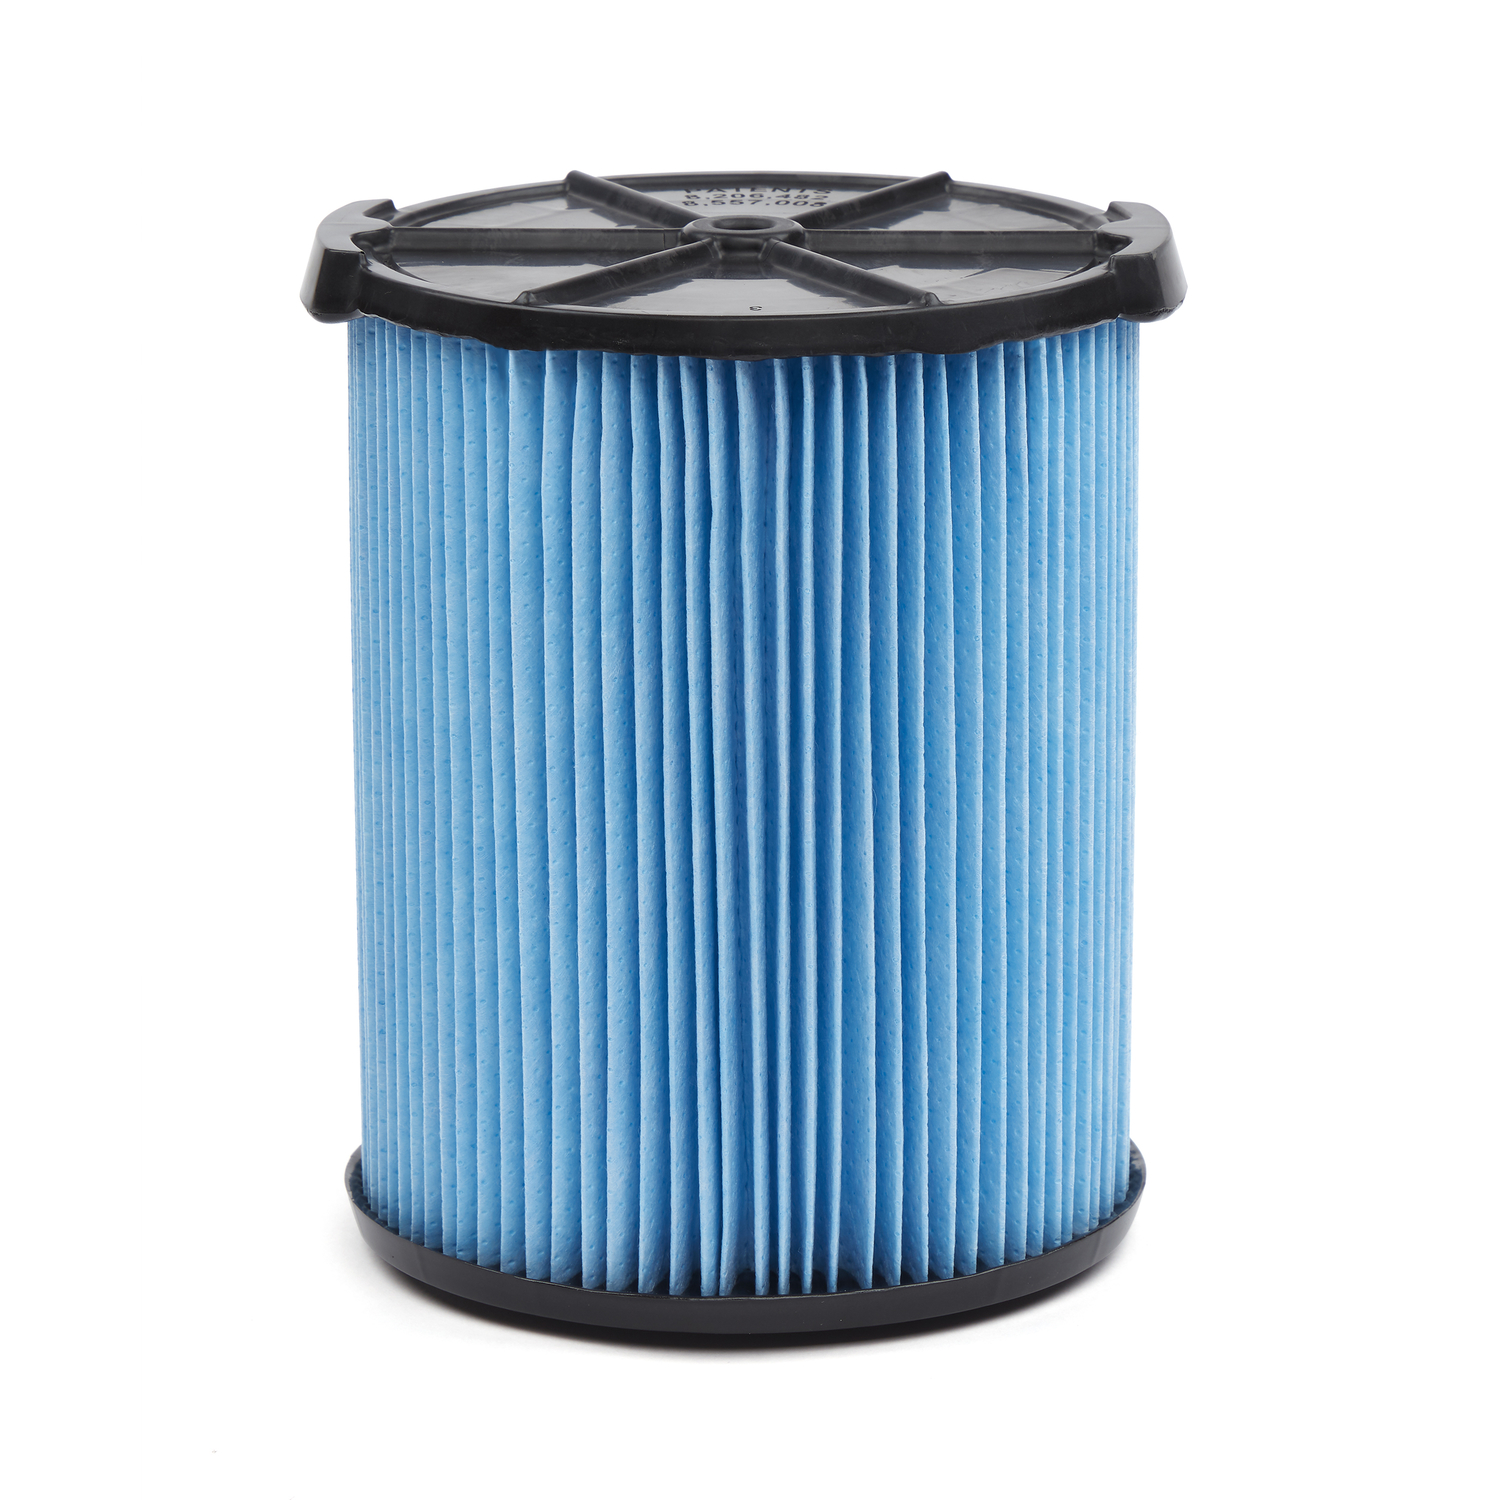 Craftsman  6.88  L x 6.88 in. W Wet/Dry Vac Filter  Blue  1 pk